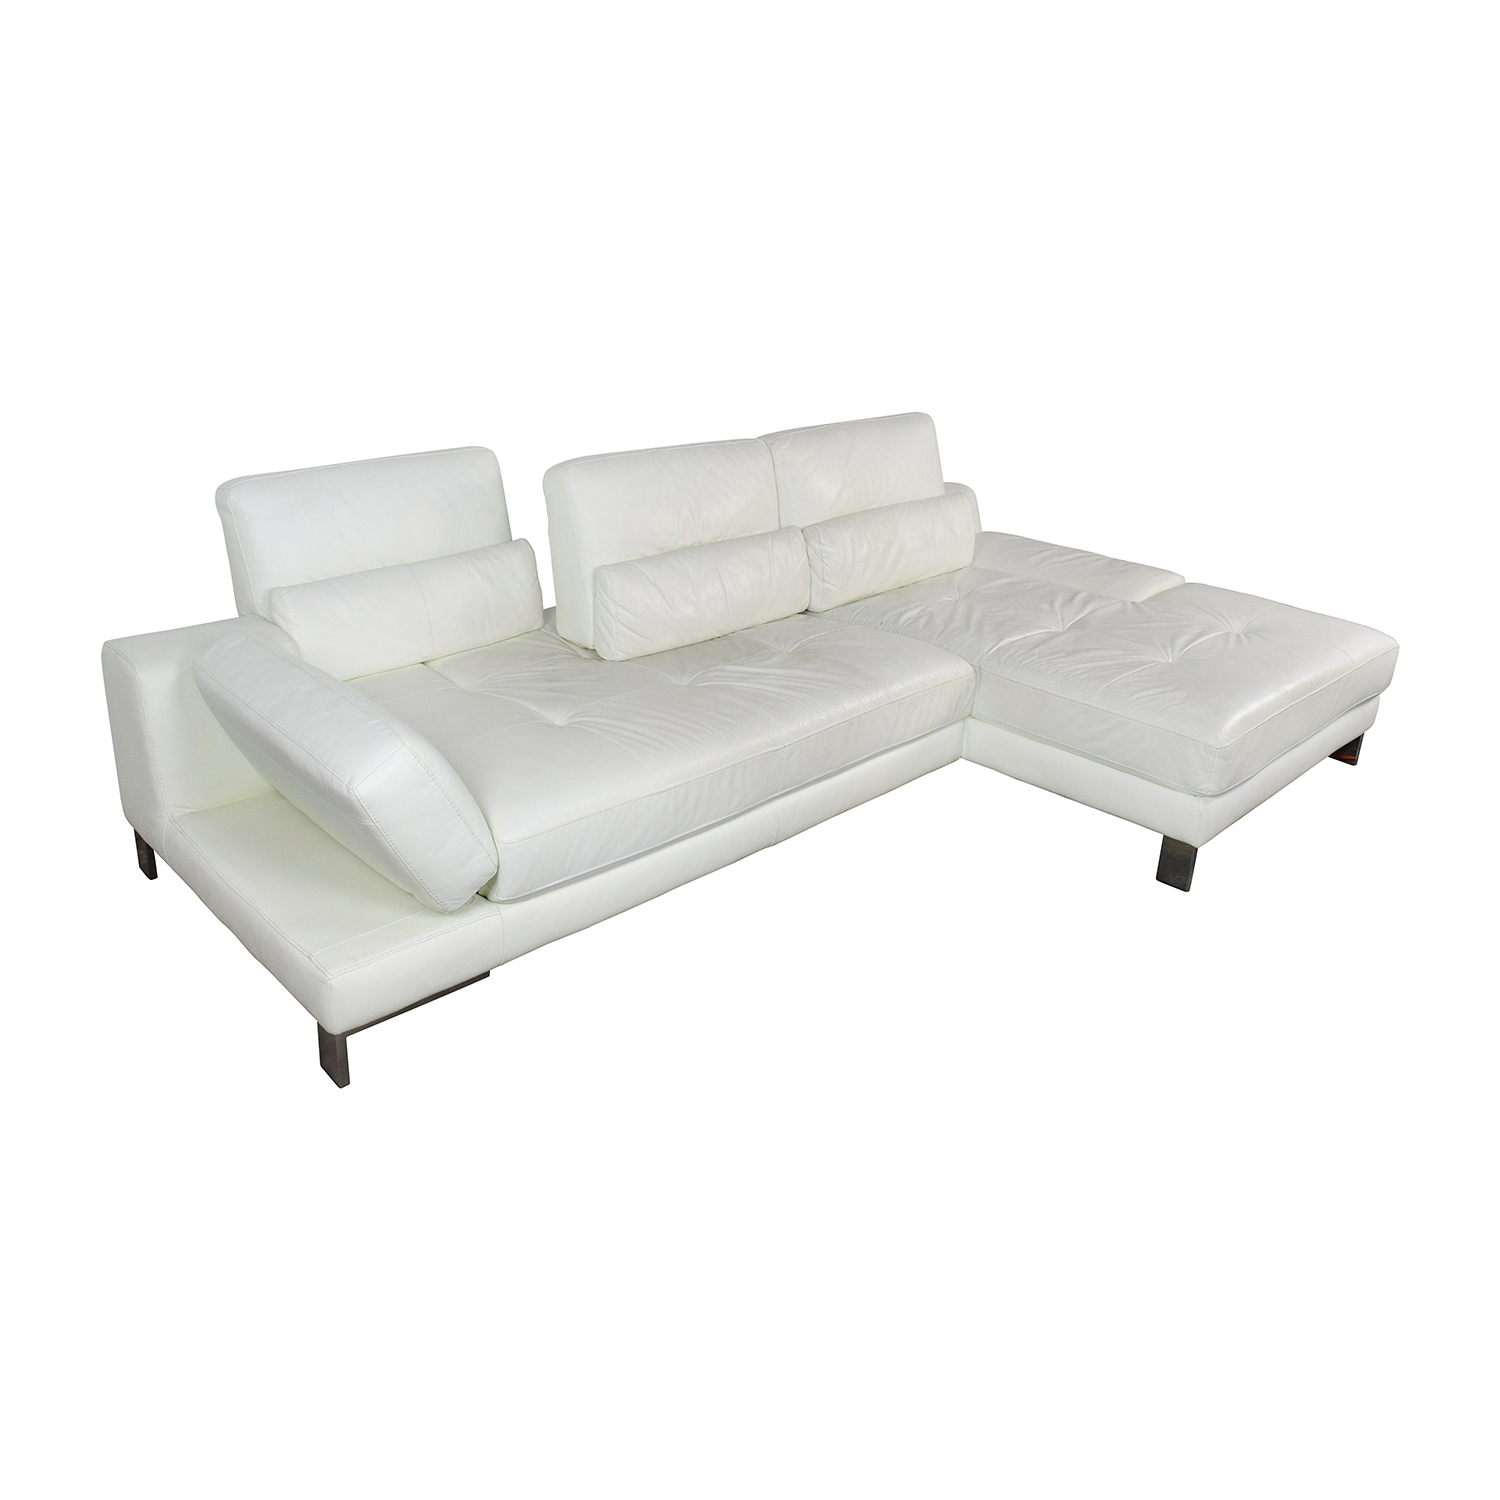 Sofa Funktion 72 Off Mobilia Mobilia Canada Funktion White Leather Sectional Sofas